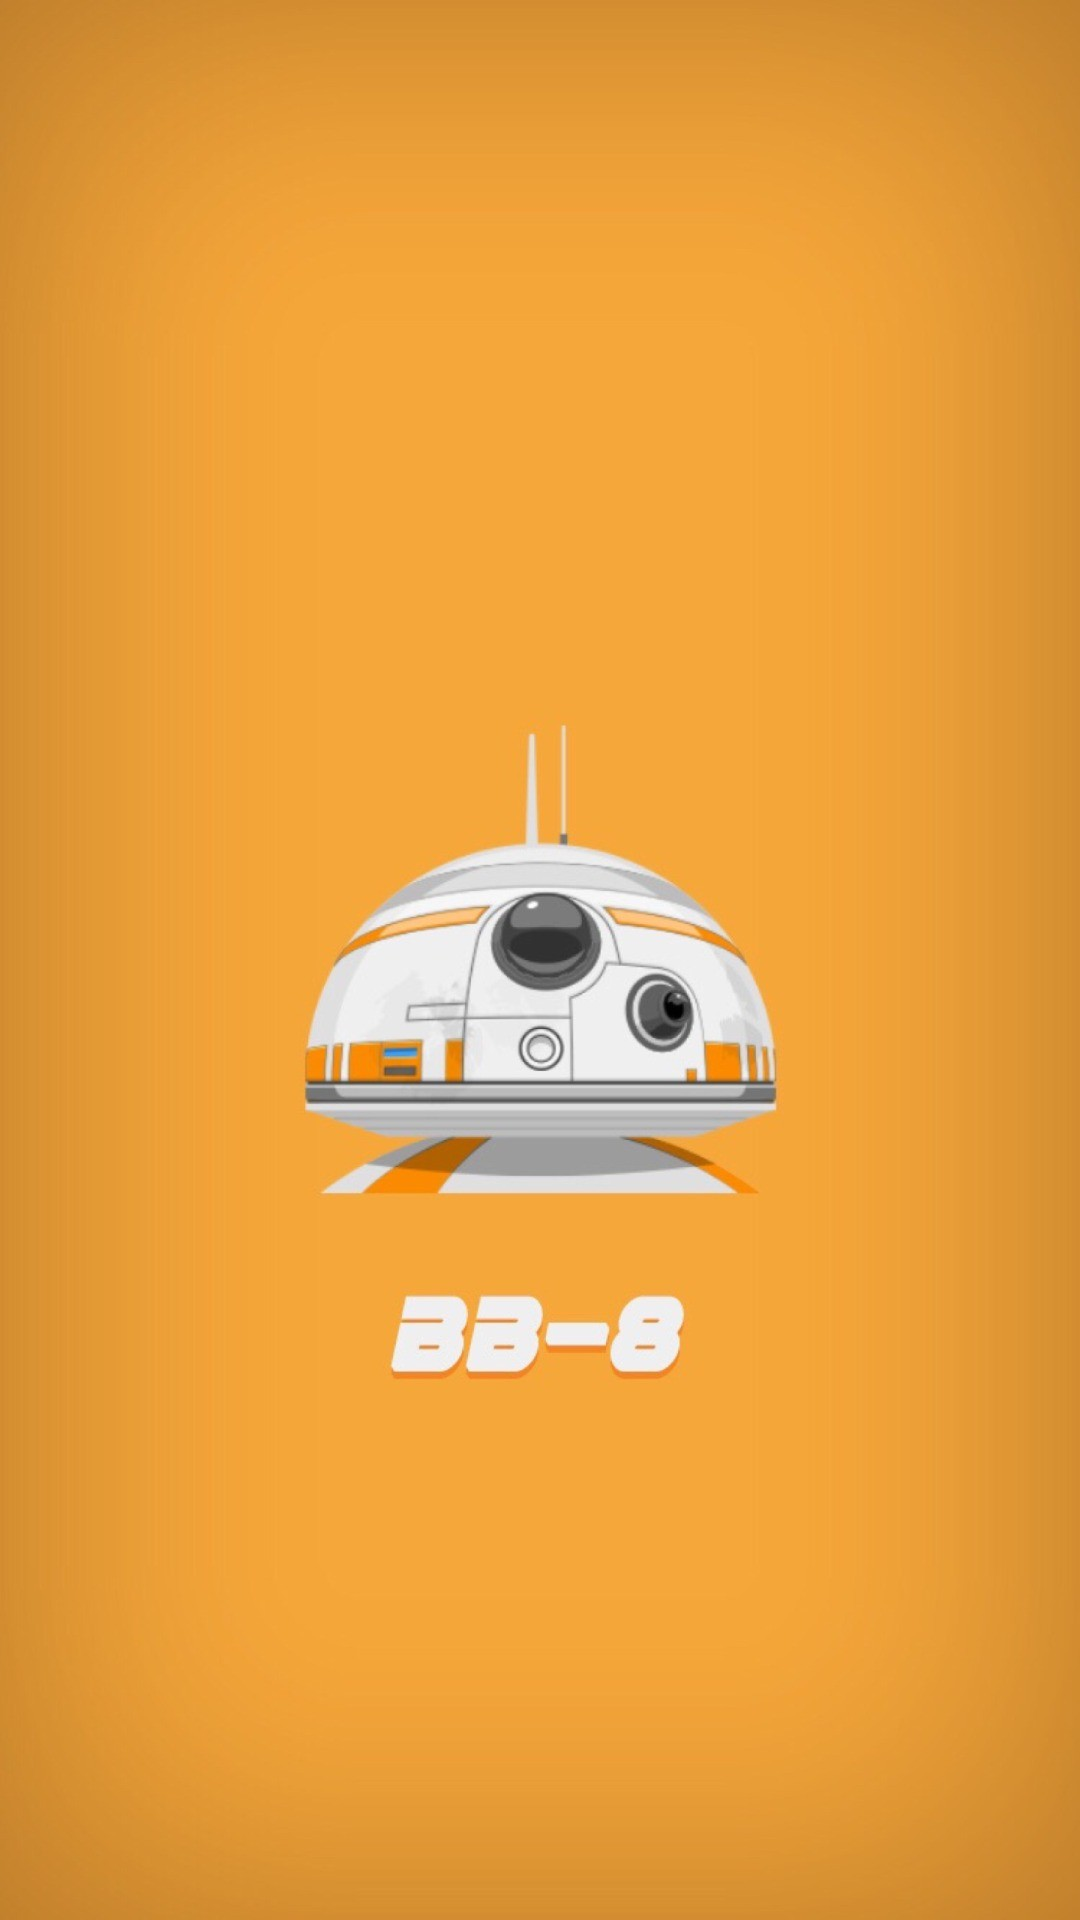 Bb8 R2d2 Star Wars Iphone Background Iphone Wallpaper Circle 1080x1920 Download Hd Wallpaper Wallpapertip